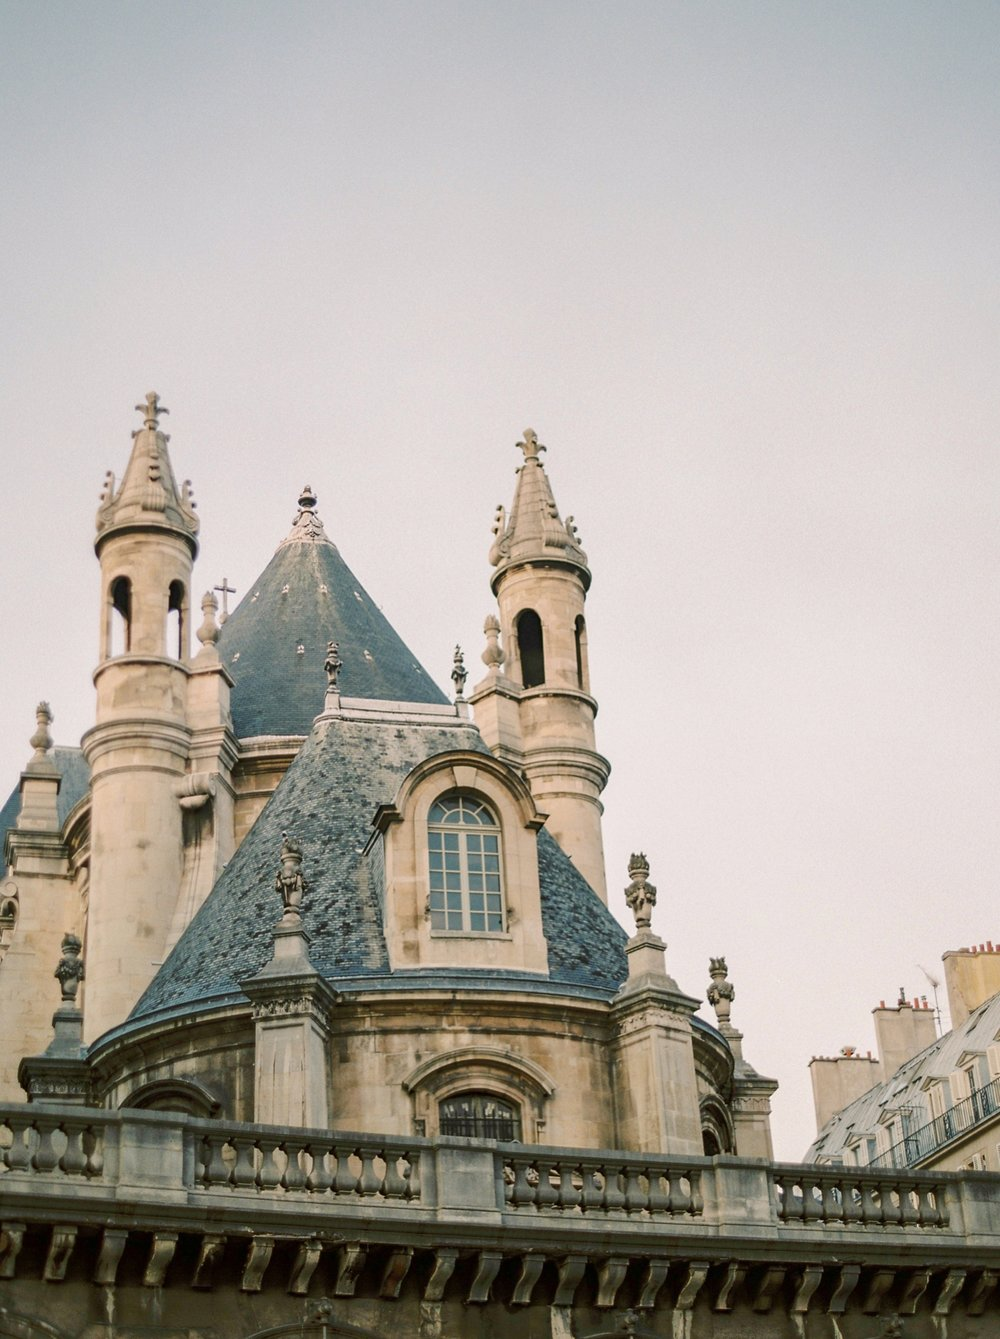 Paris France travel photography | fine art prints | justine milton film photographer